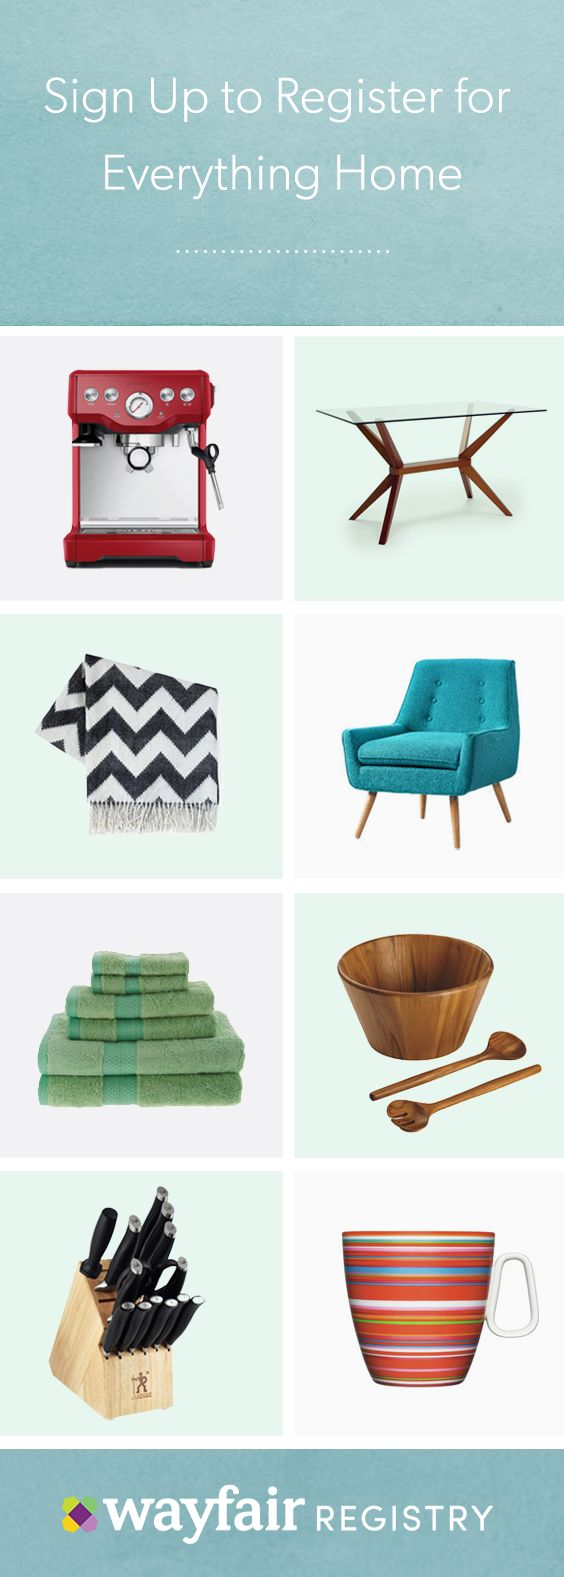 136 best images about Wayfair Registry on Pinterest | Shops, New ...